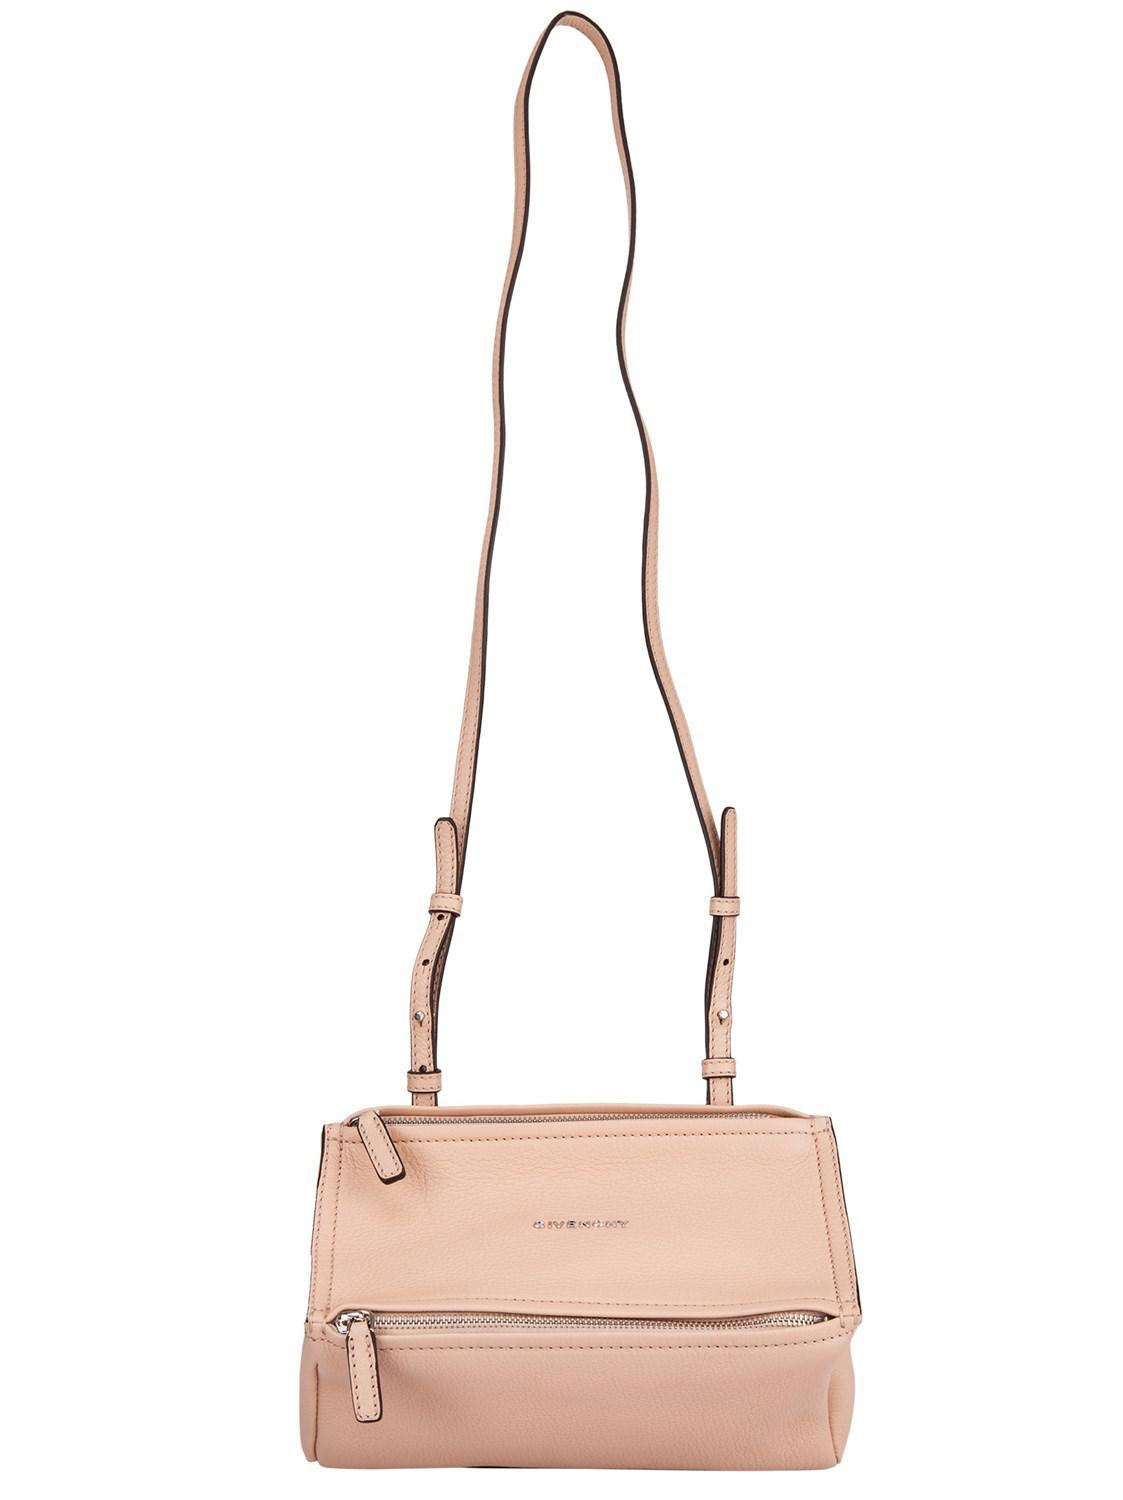 Lyst - Givenchy Pink Mini Pandora Shoulder Bag In Goatskin With ... ff49d1bb55a15